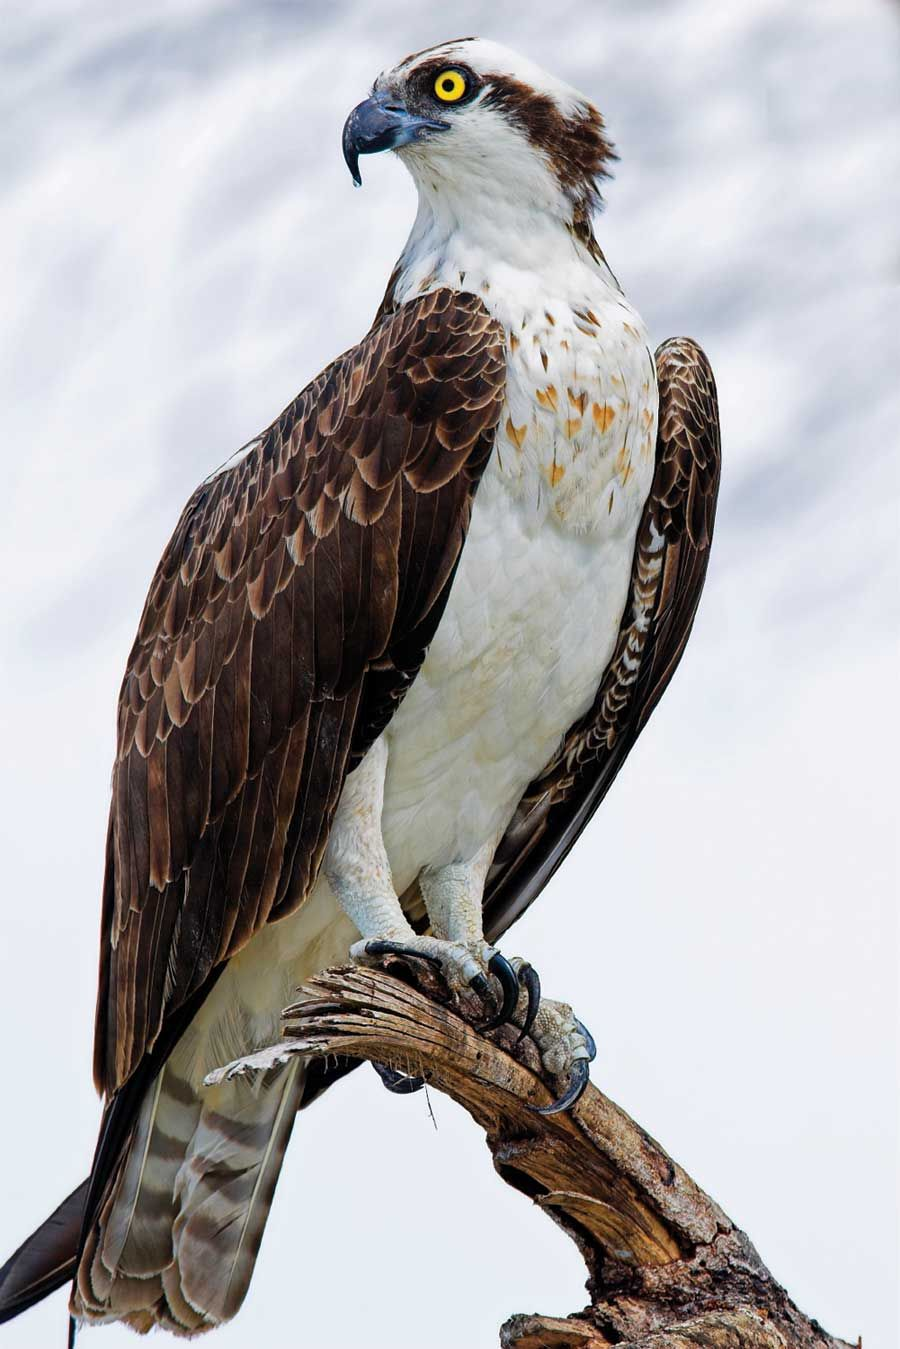 Pin By Marcia Mckinnon On Inland Lakes Birds Of Prey Beautiful Birds Fish Hawk